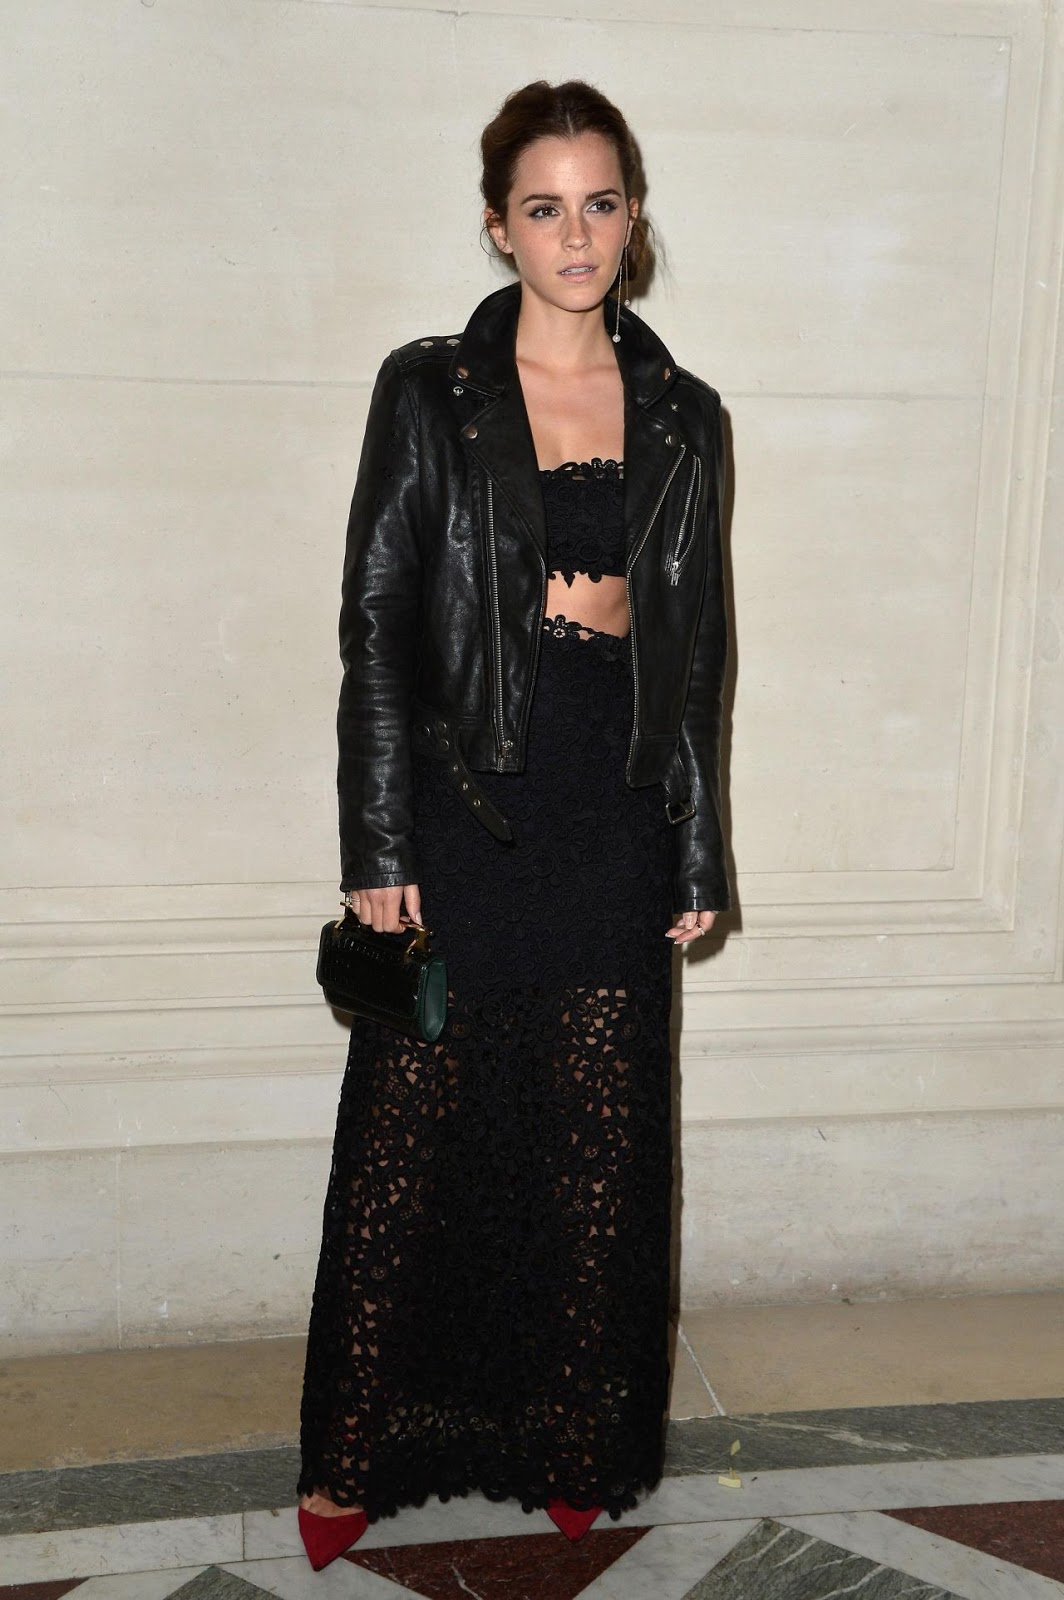 Emma Watson Bares Midriff In Black Lace Two Piece Dress At The Valentino Fall 2014 Couture Show